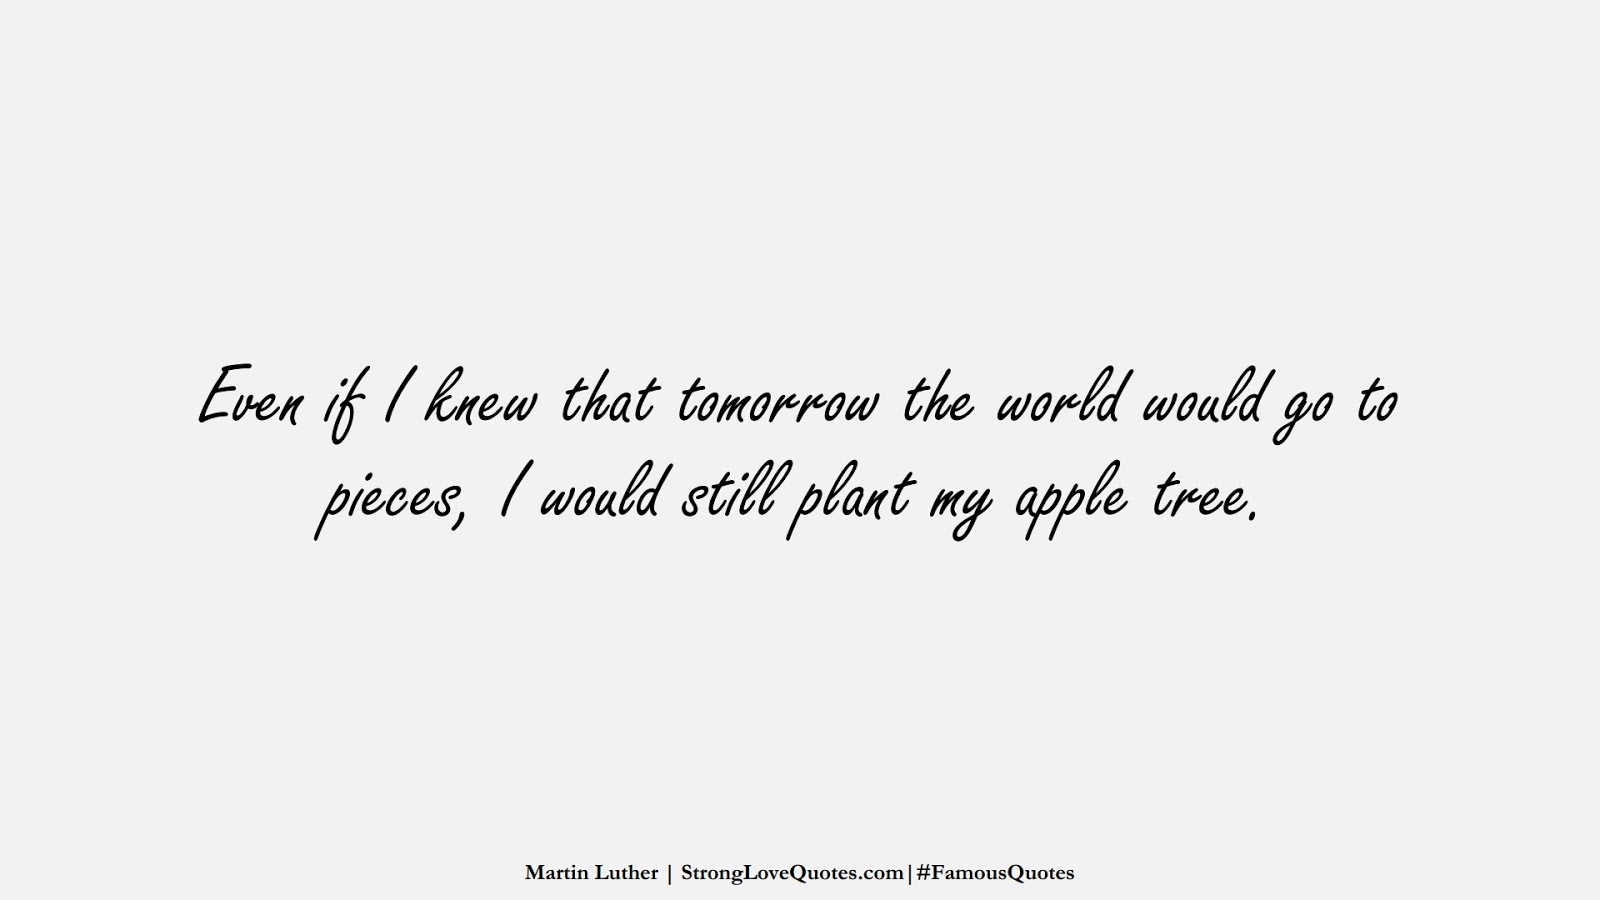 Even if I knew that tomorrow the world would go to pieces, I would still plant my apple tree. (Martin Luther);  #FamousQuotes